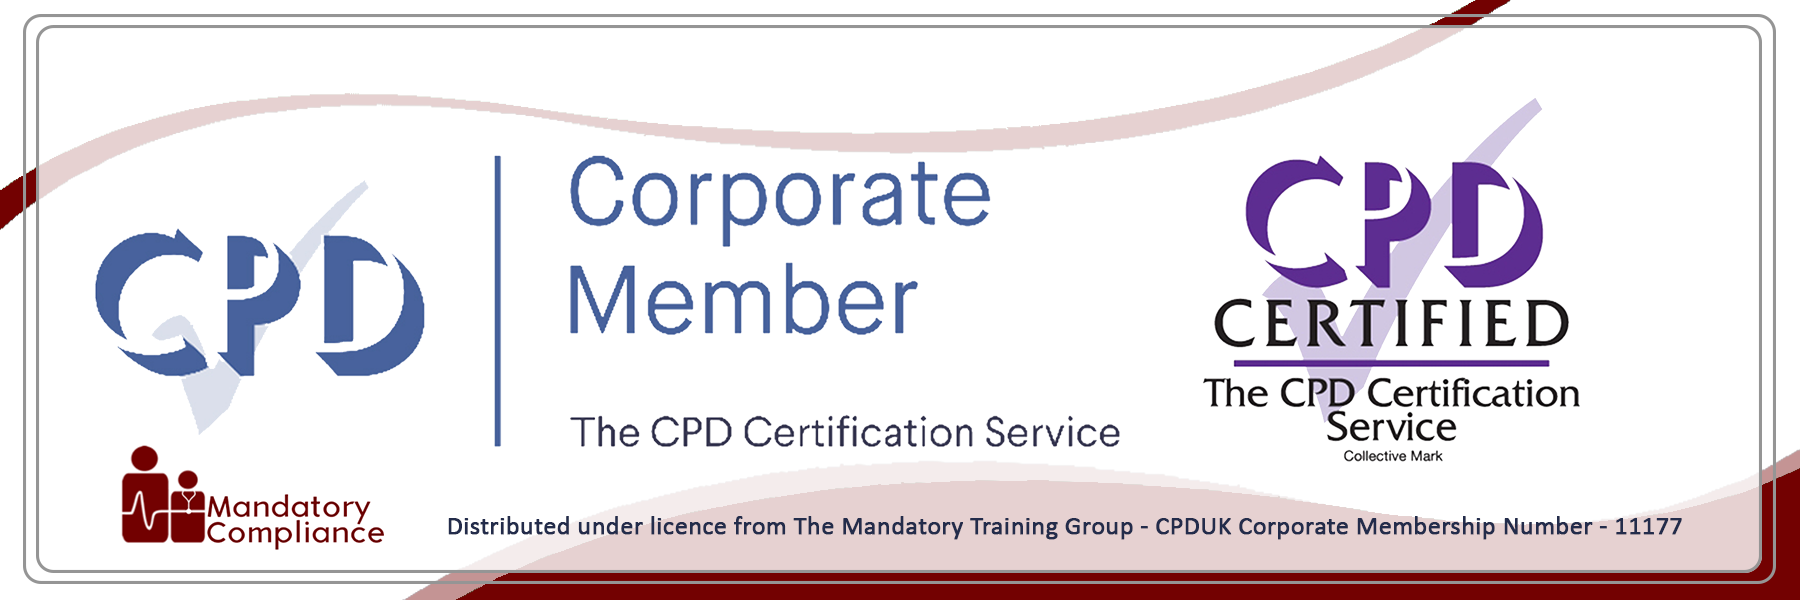 Employee Termination Process - Online Training Course - CPD Accredited - Mandatory Compliance UK -